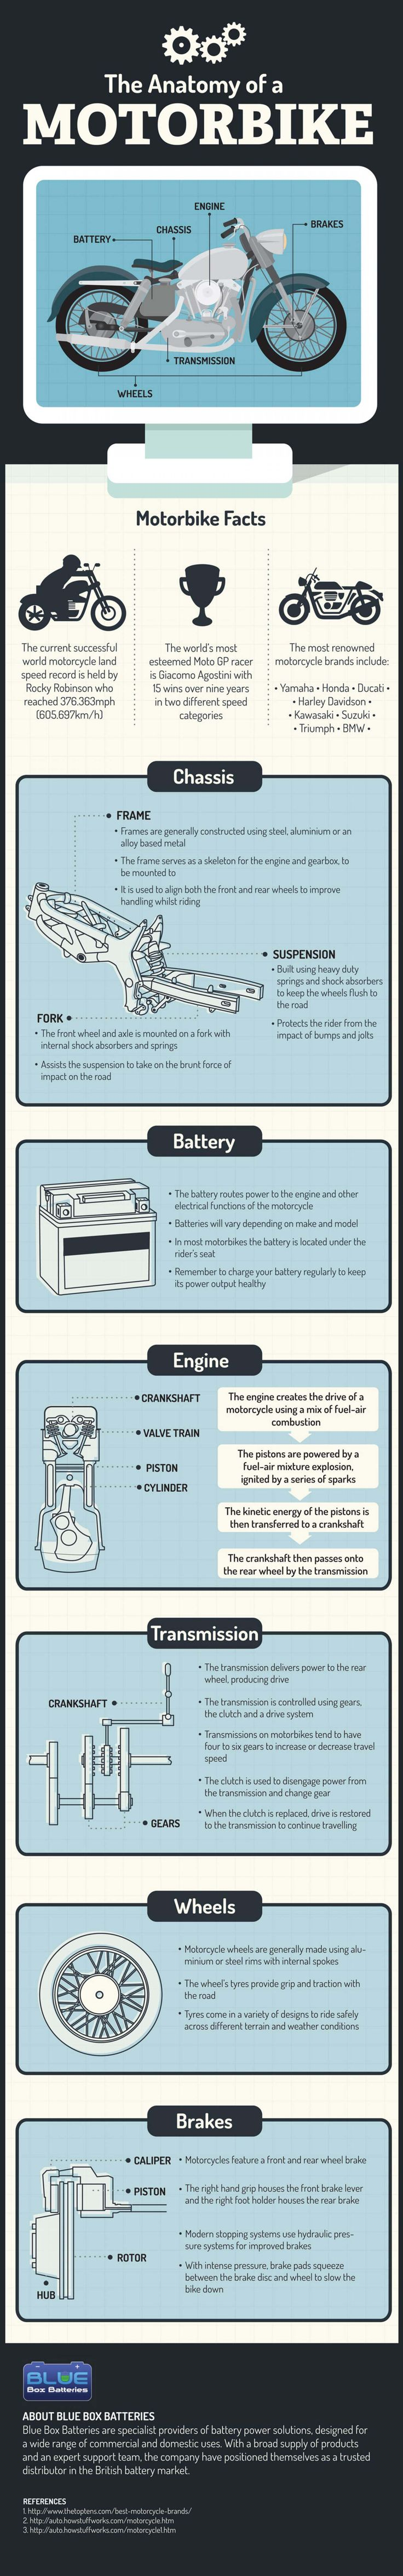 Infographic The Anatomy of a Motorbike | Infographics Creator